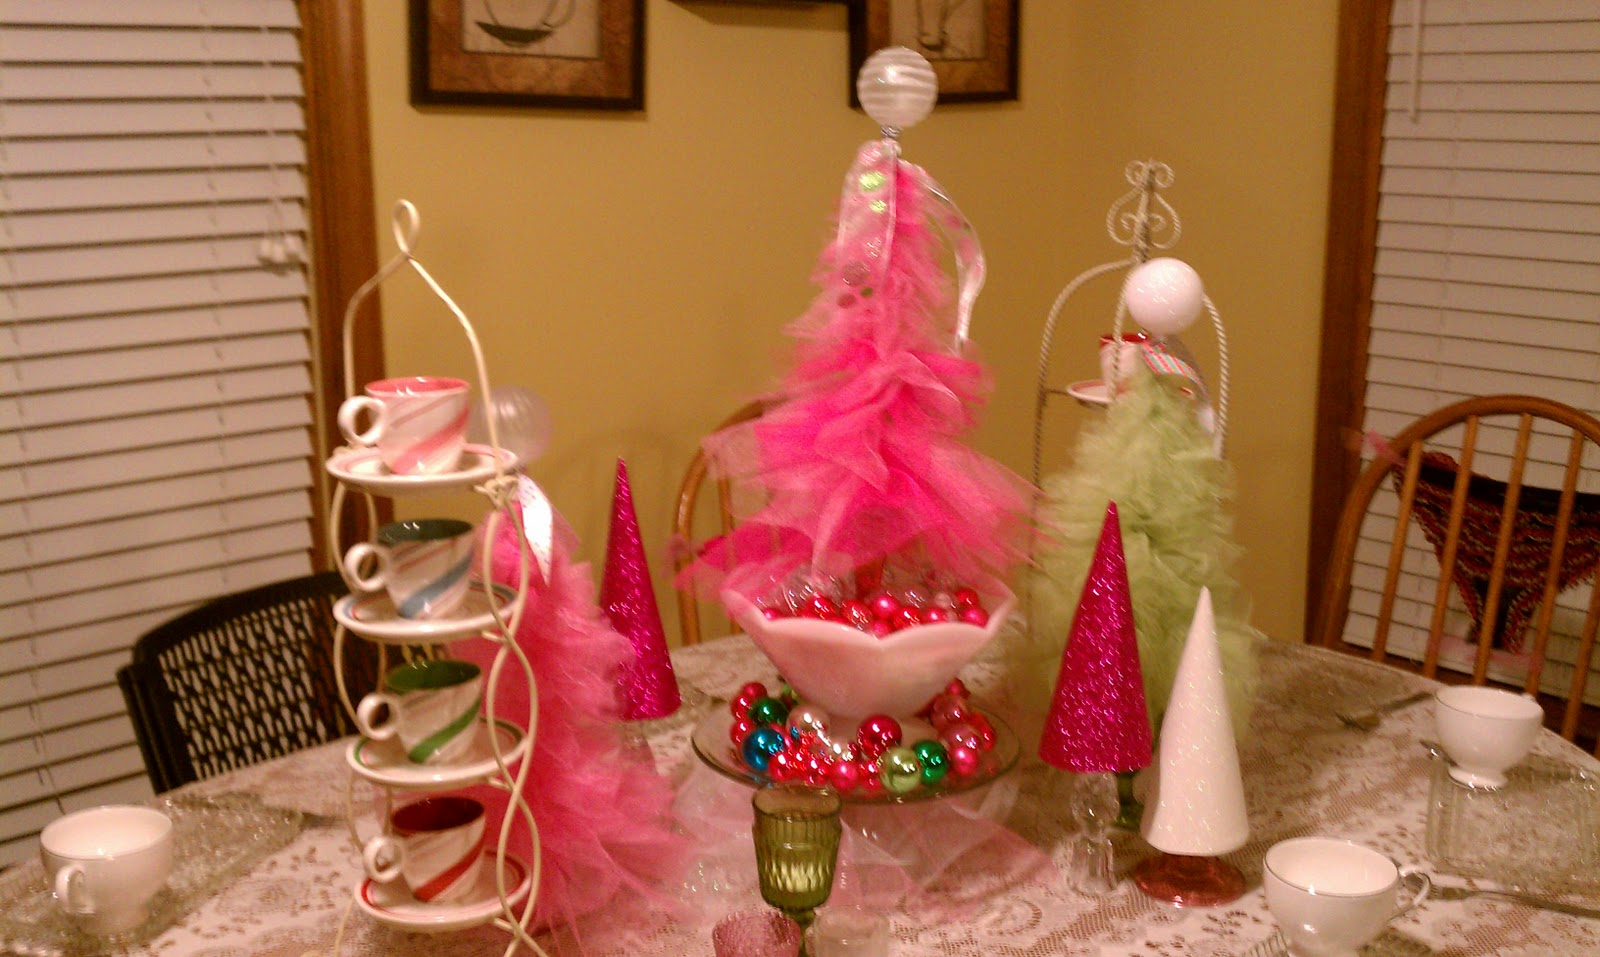 Festive pink decorations and baubles on a table